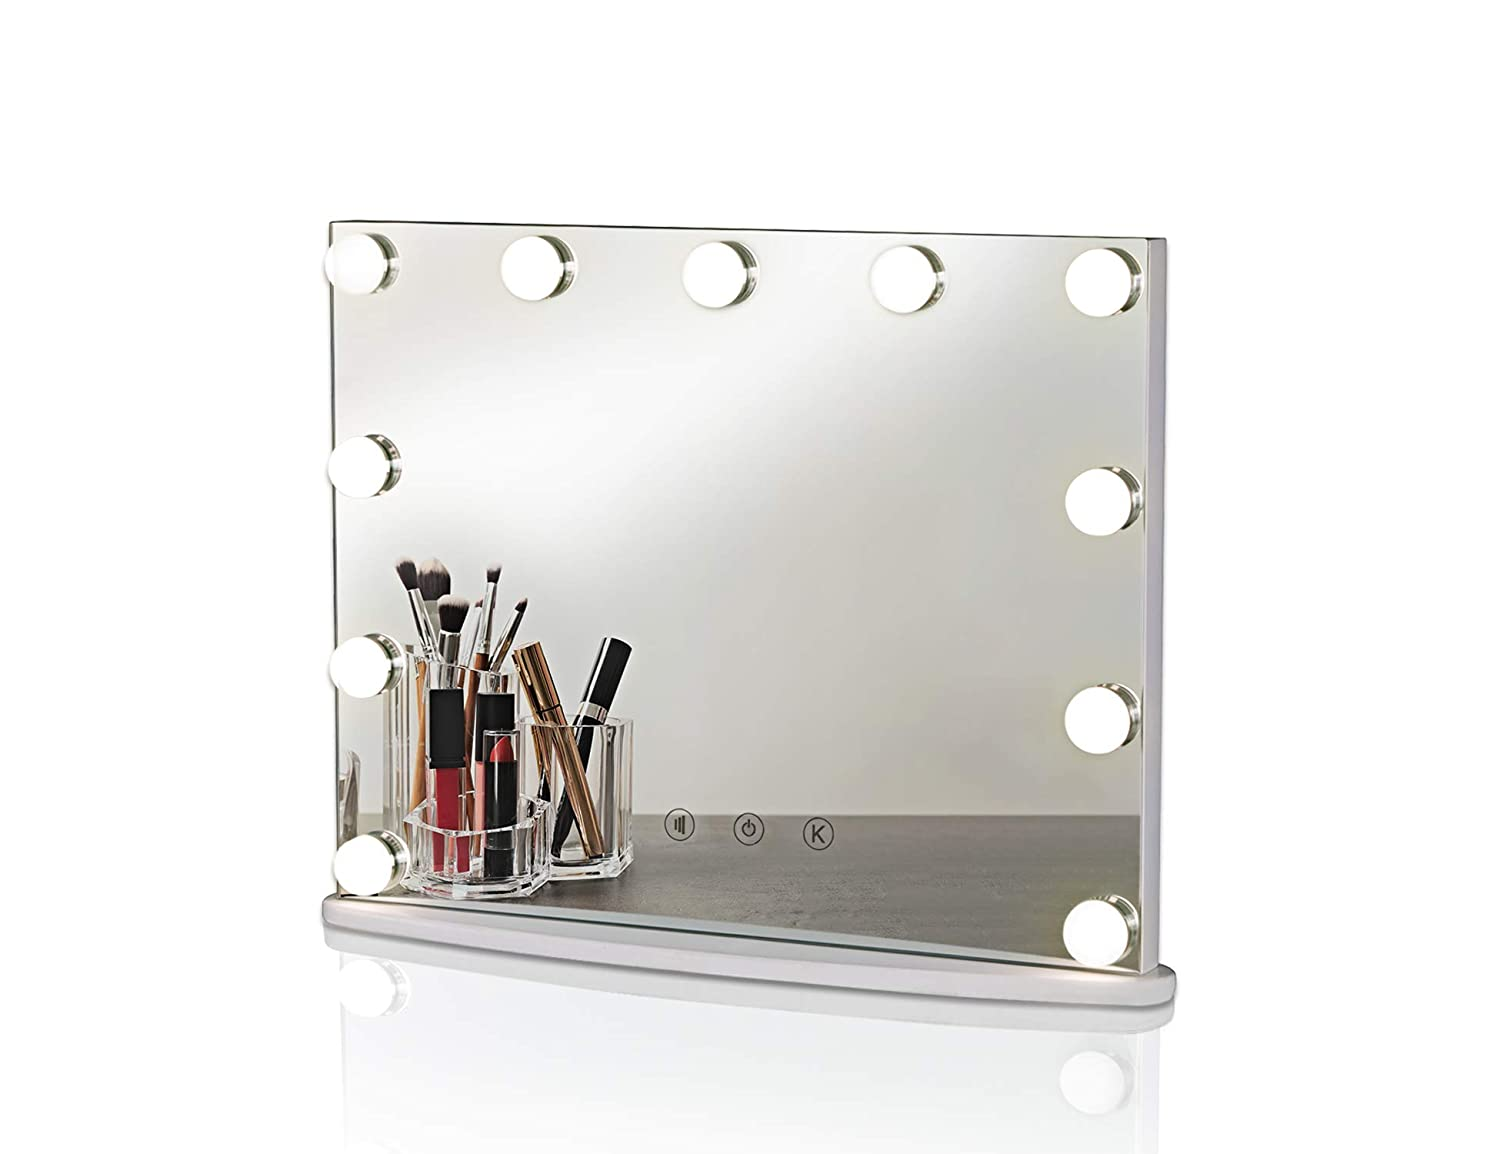 LUXFURNI Hollywood Tabletop Makeup Mirror w/USB-Powered Dimmable Light, Touch Control, Cold/Warm Light (M)